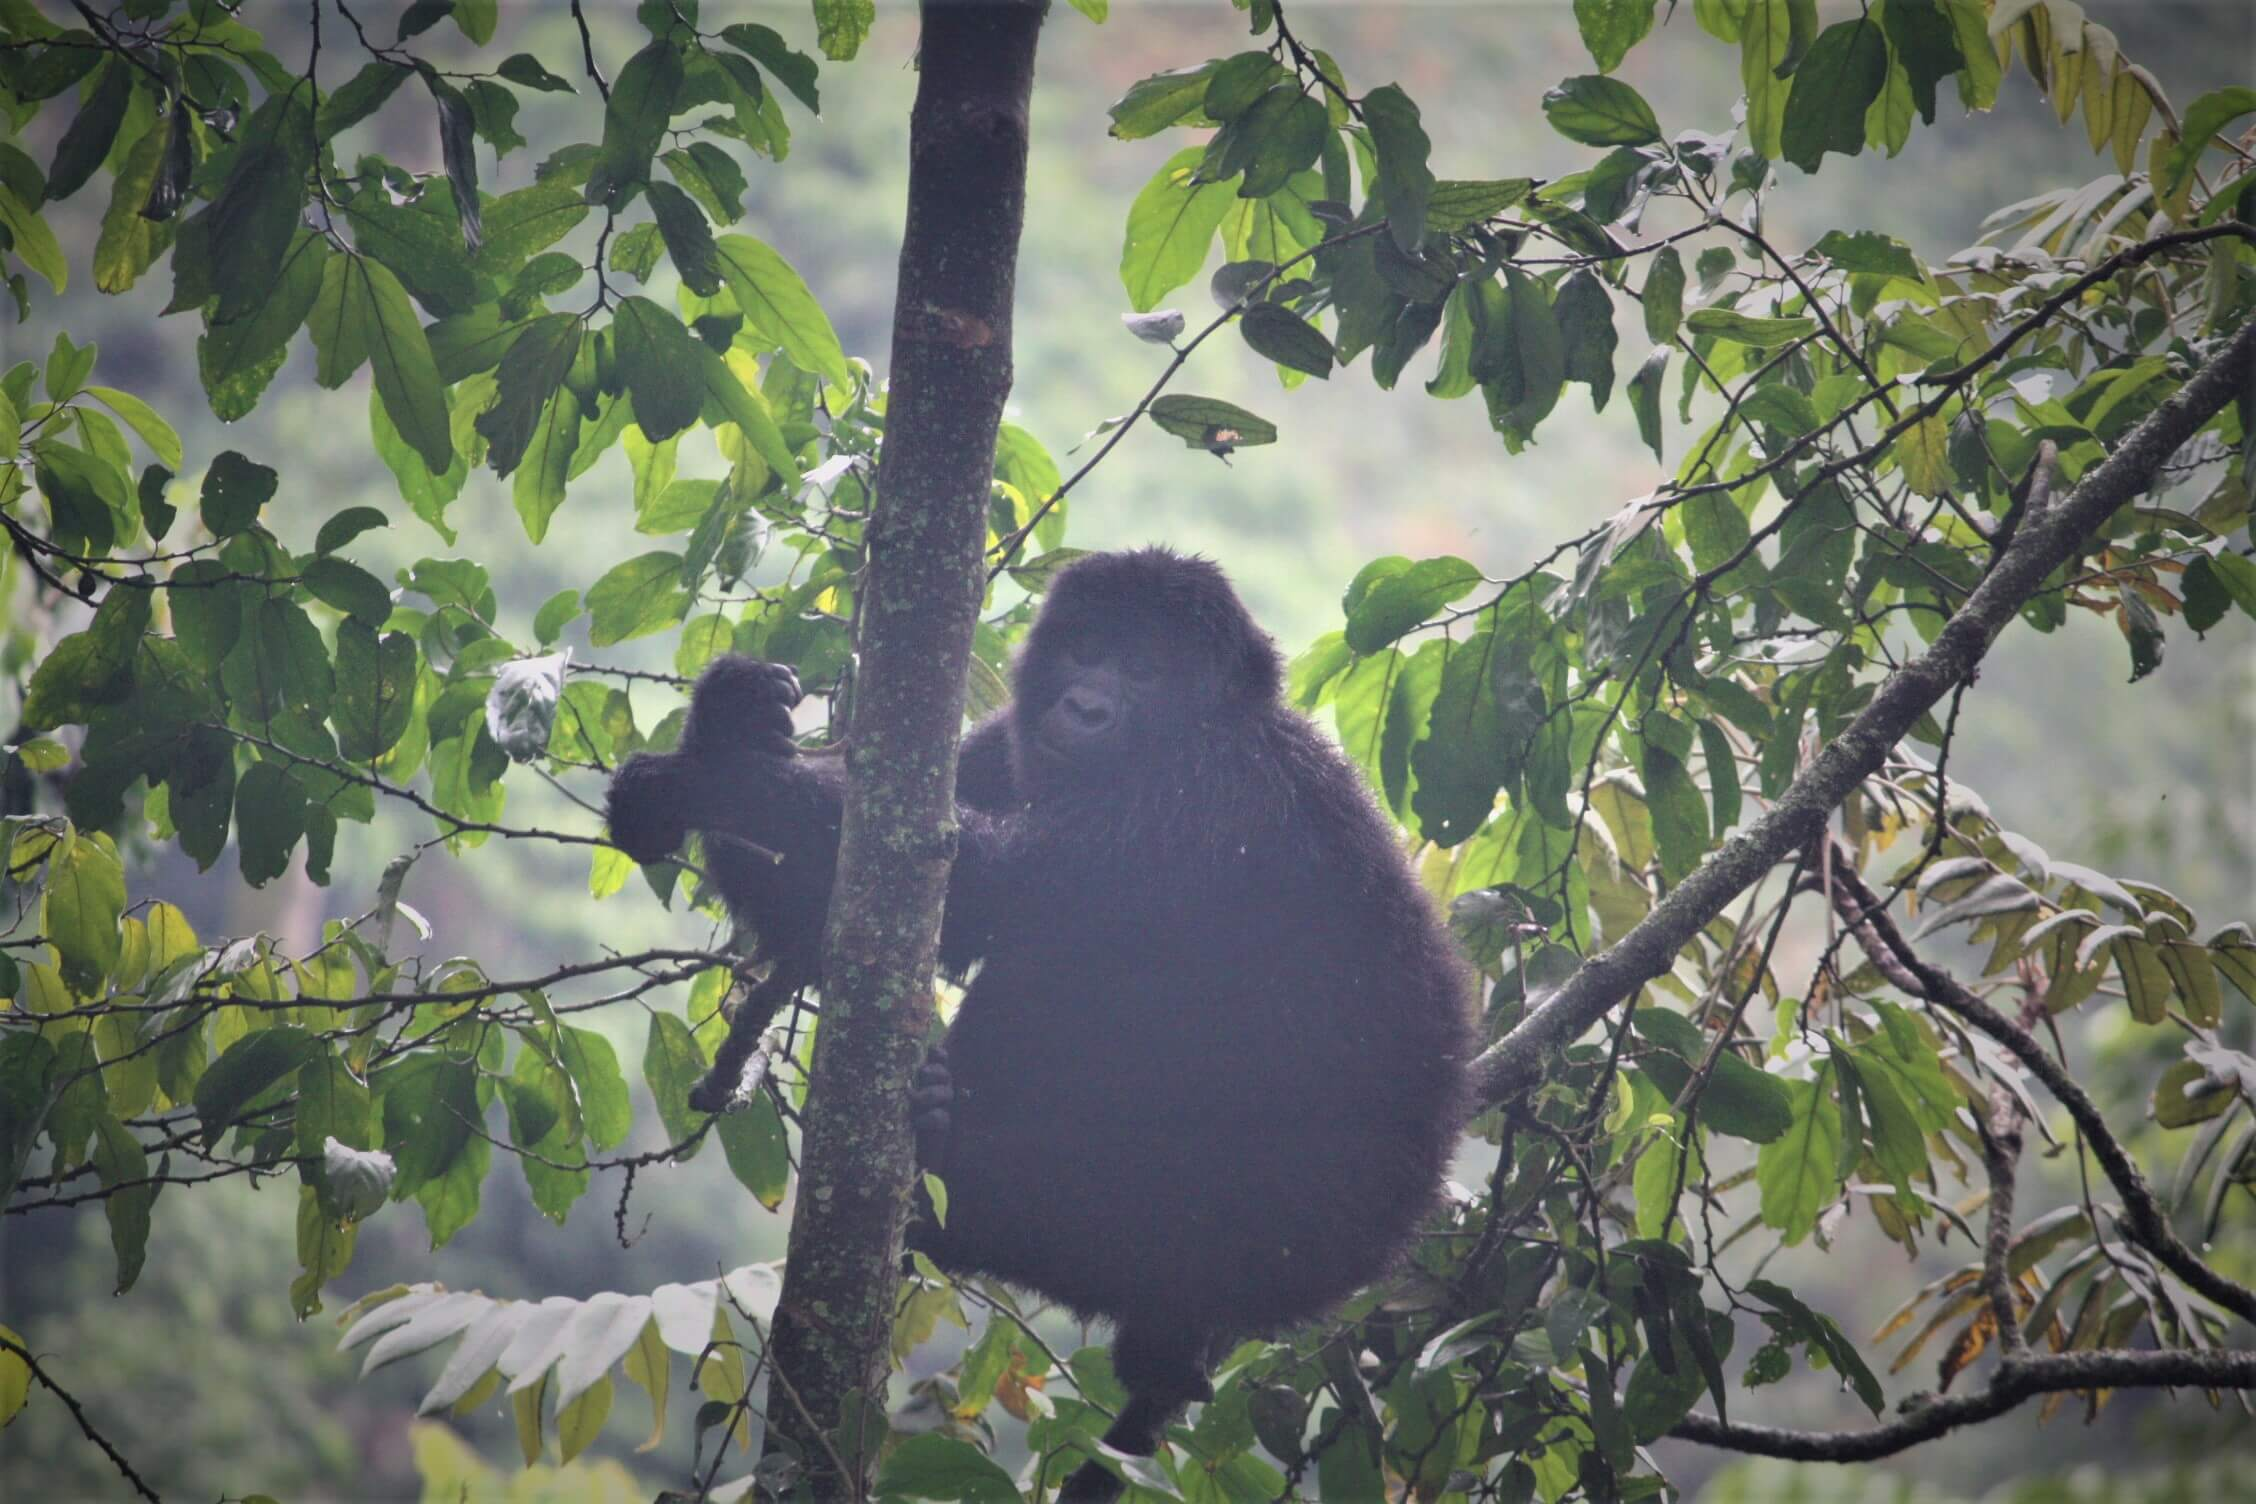 Juvenile mountain gorilla